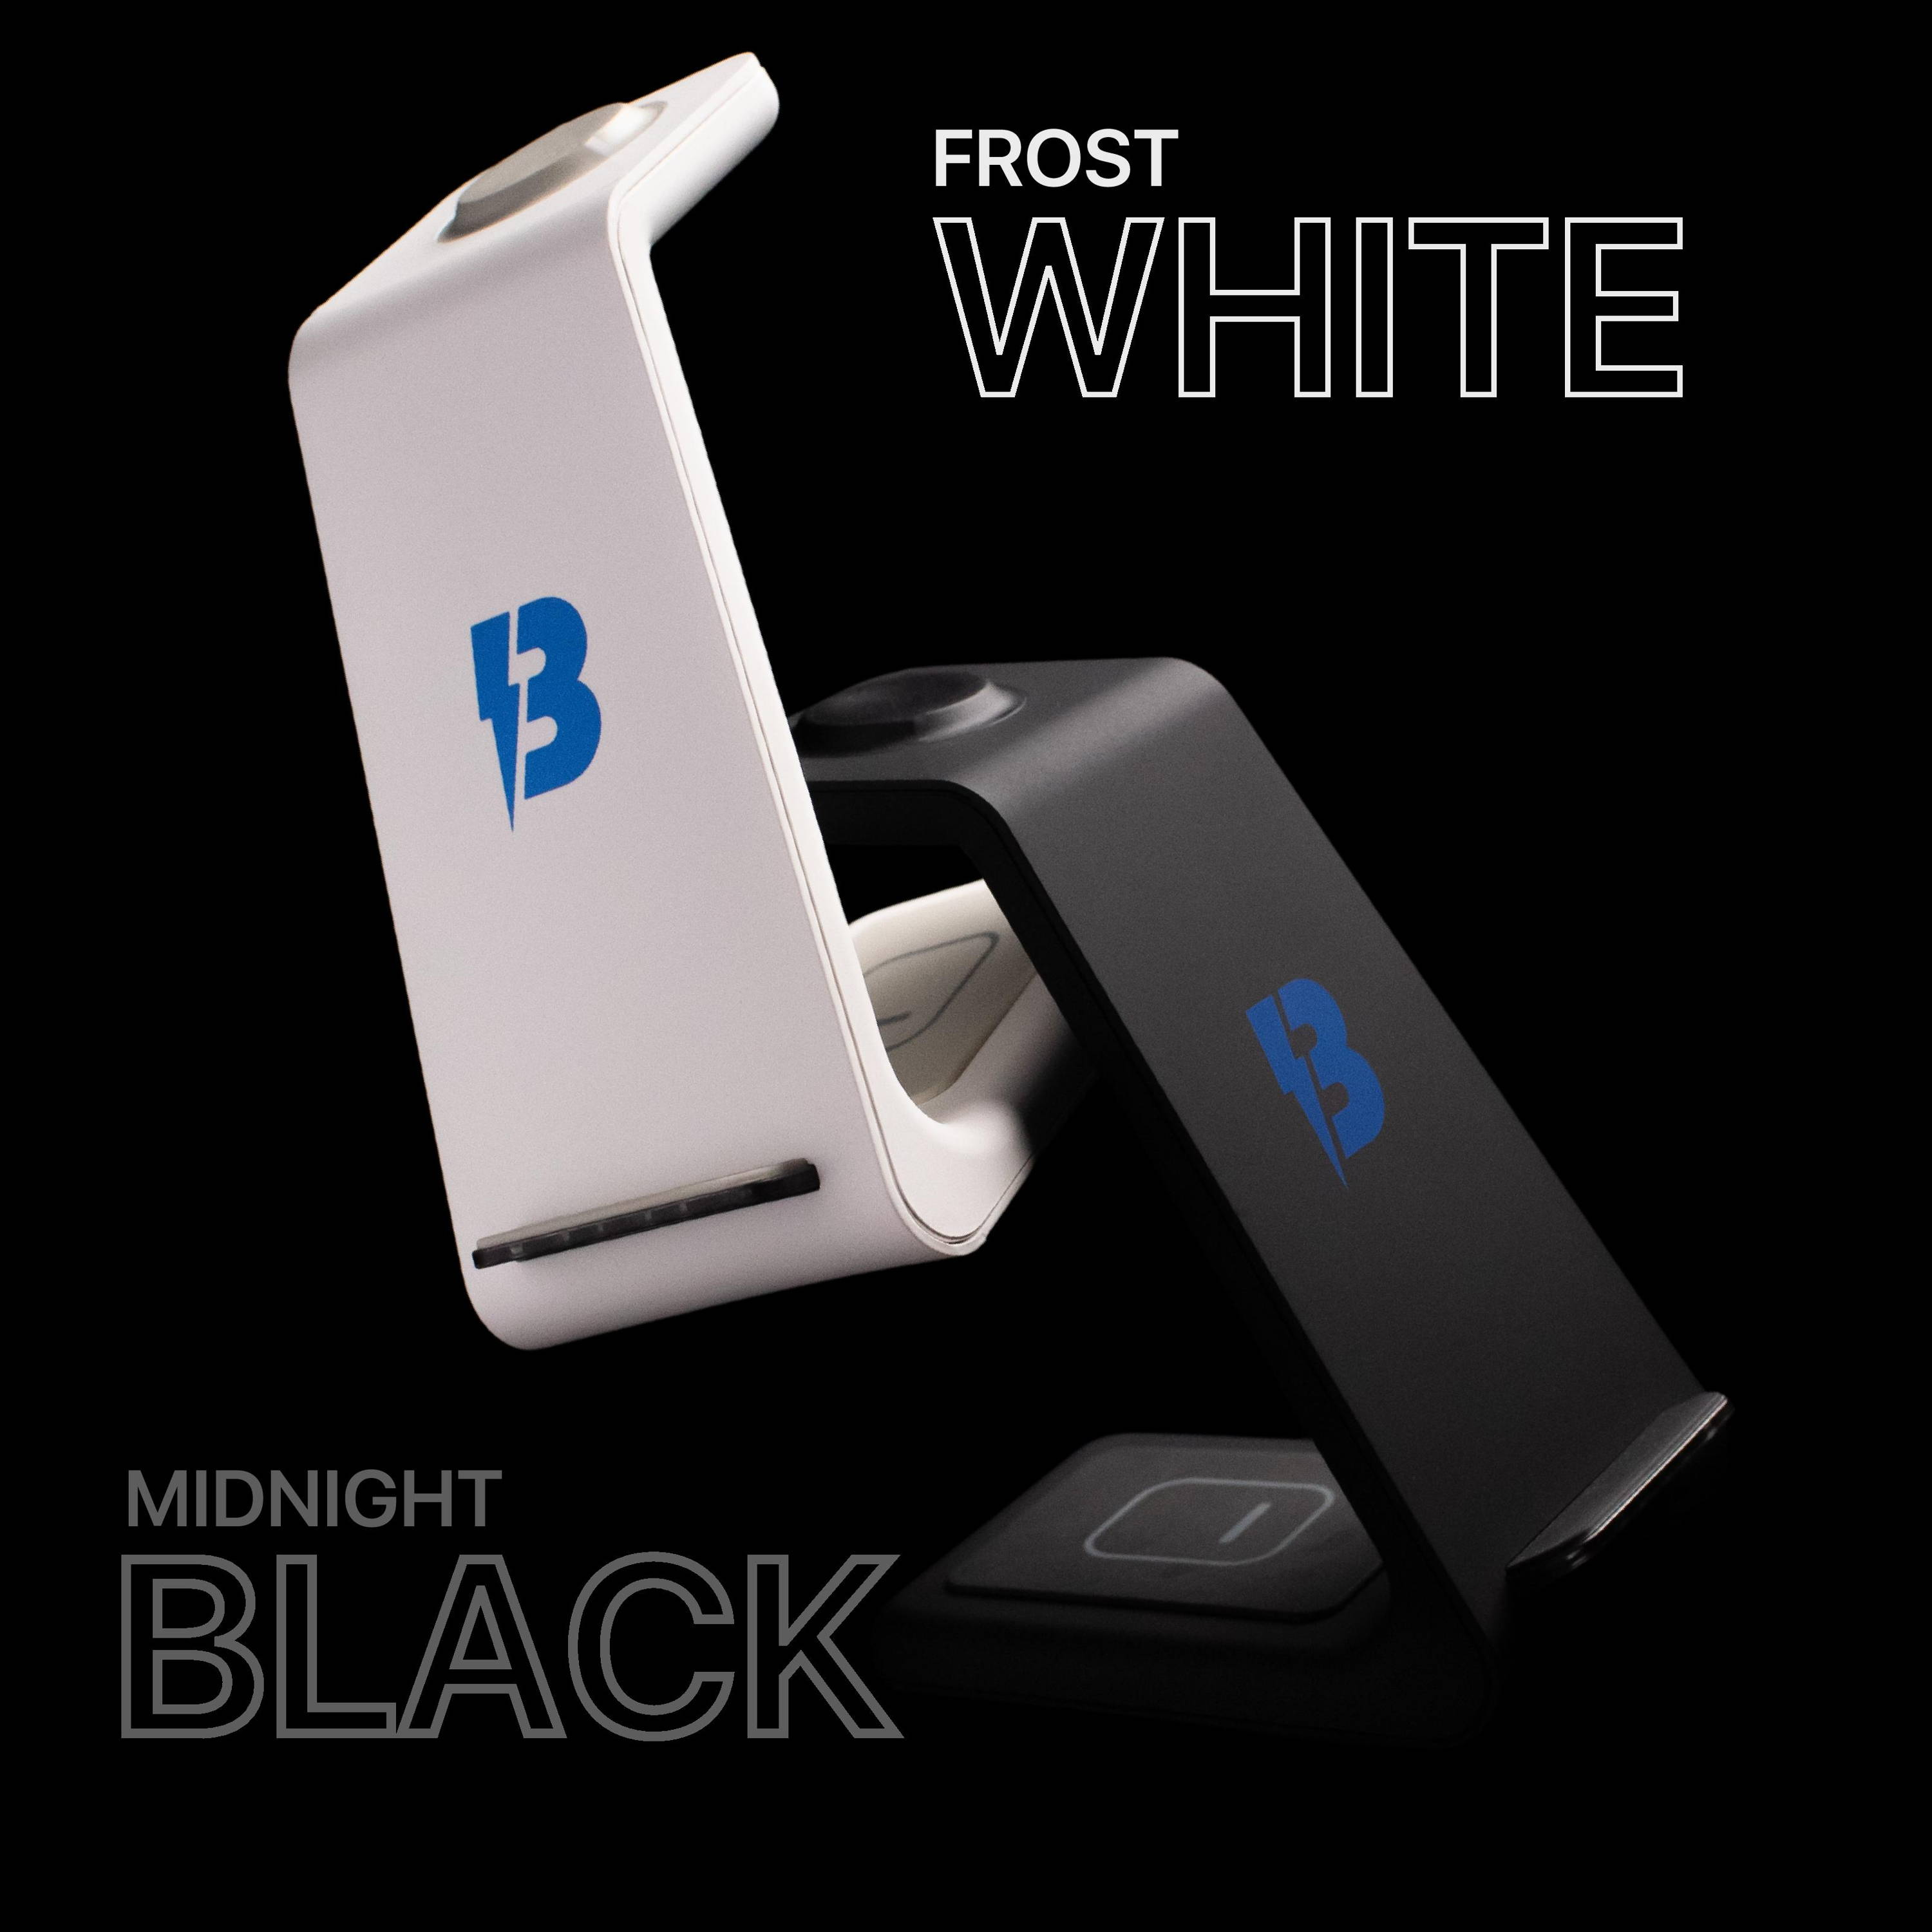 3 in 1 apple charging station midnight black and frost white